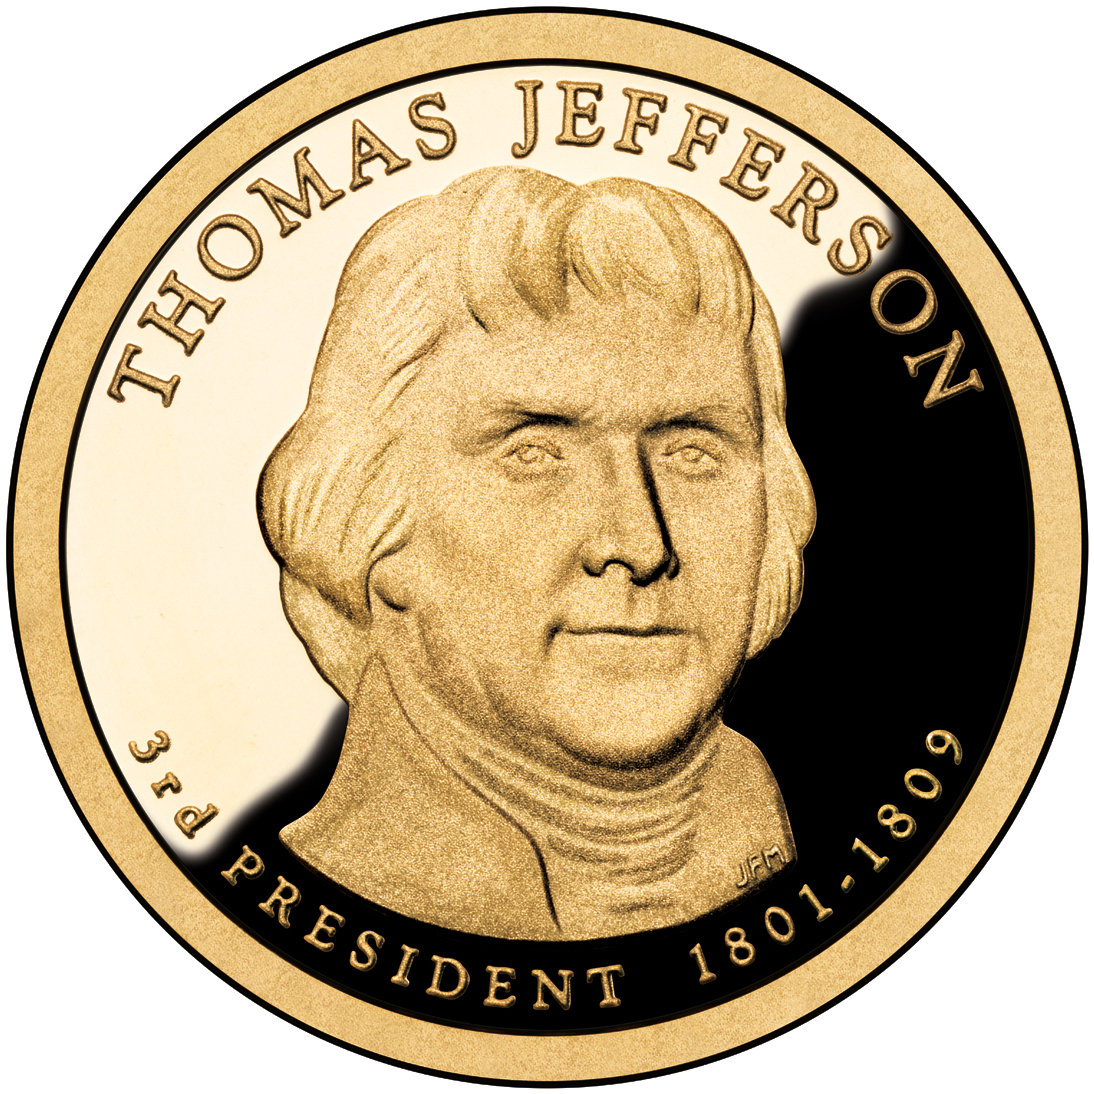 Jefferson dollar; U.S. Mint image via Associated Press